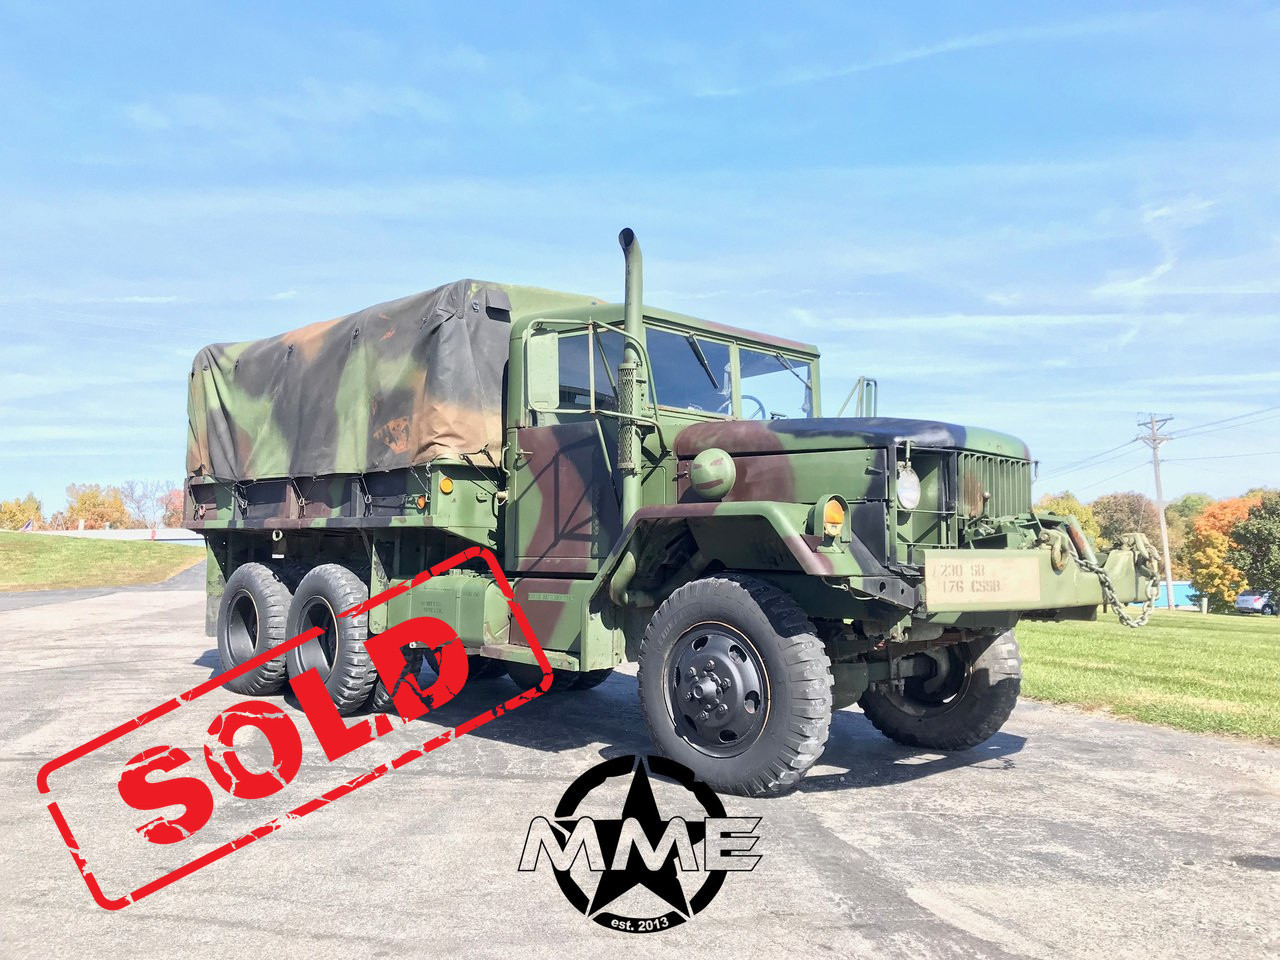 1977 2 1/2 TON M35A2 HARDTOP 6X6 MILITARY TRUCK W/Winch